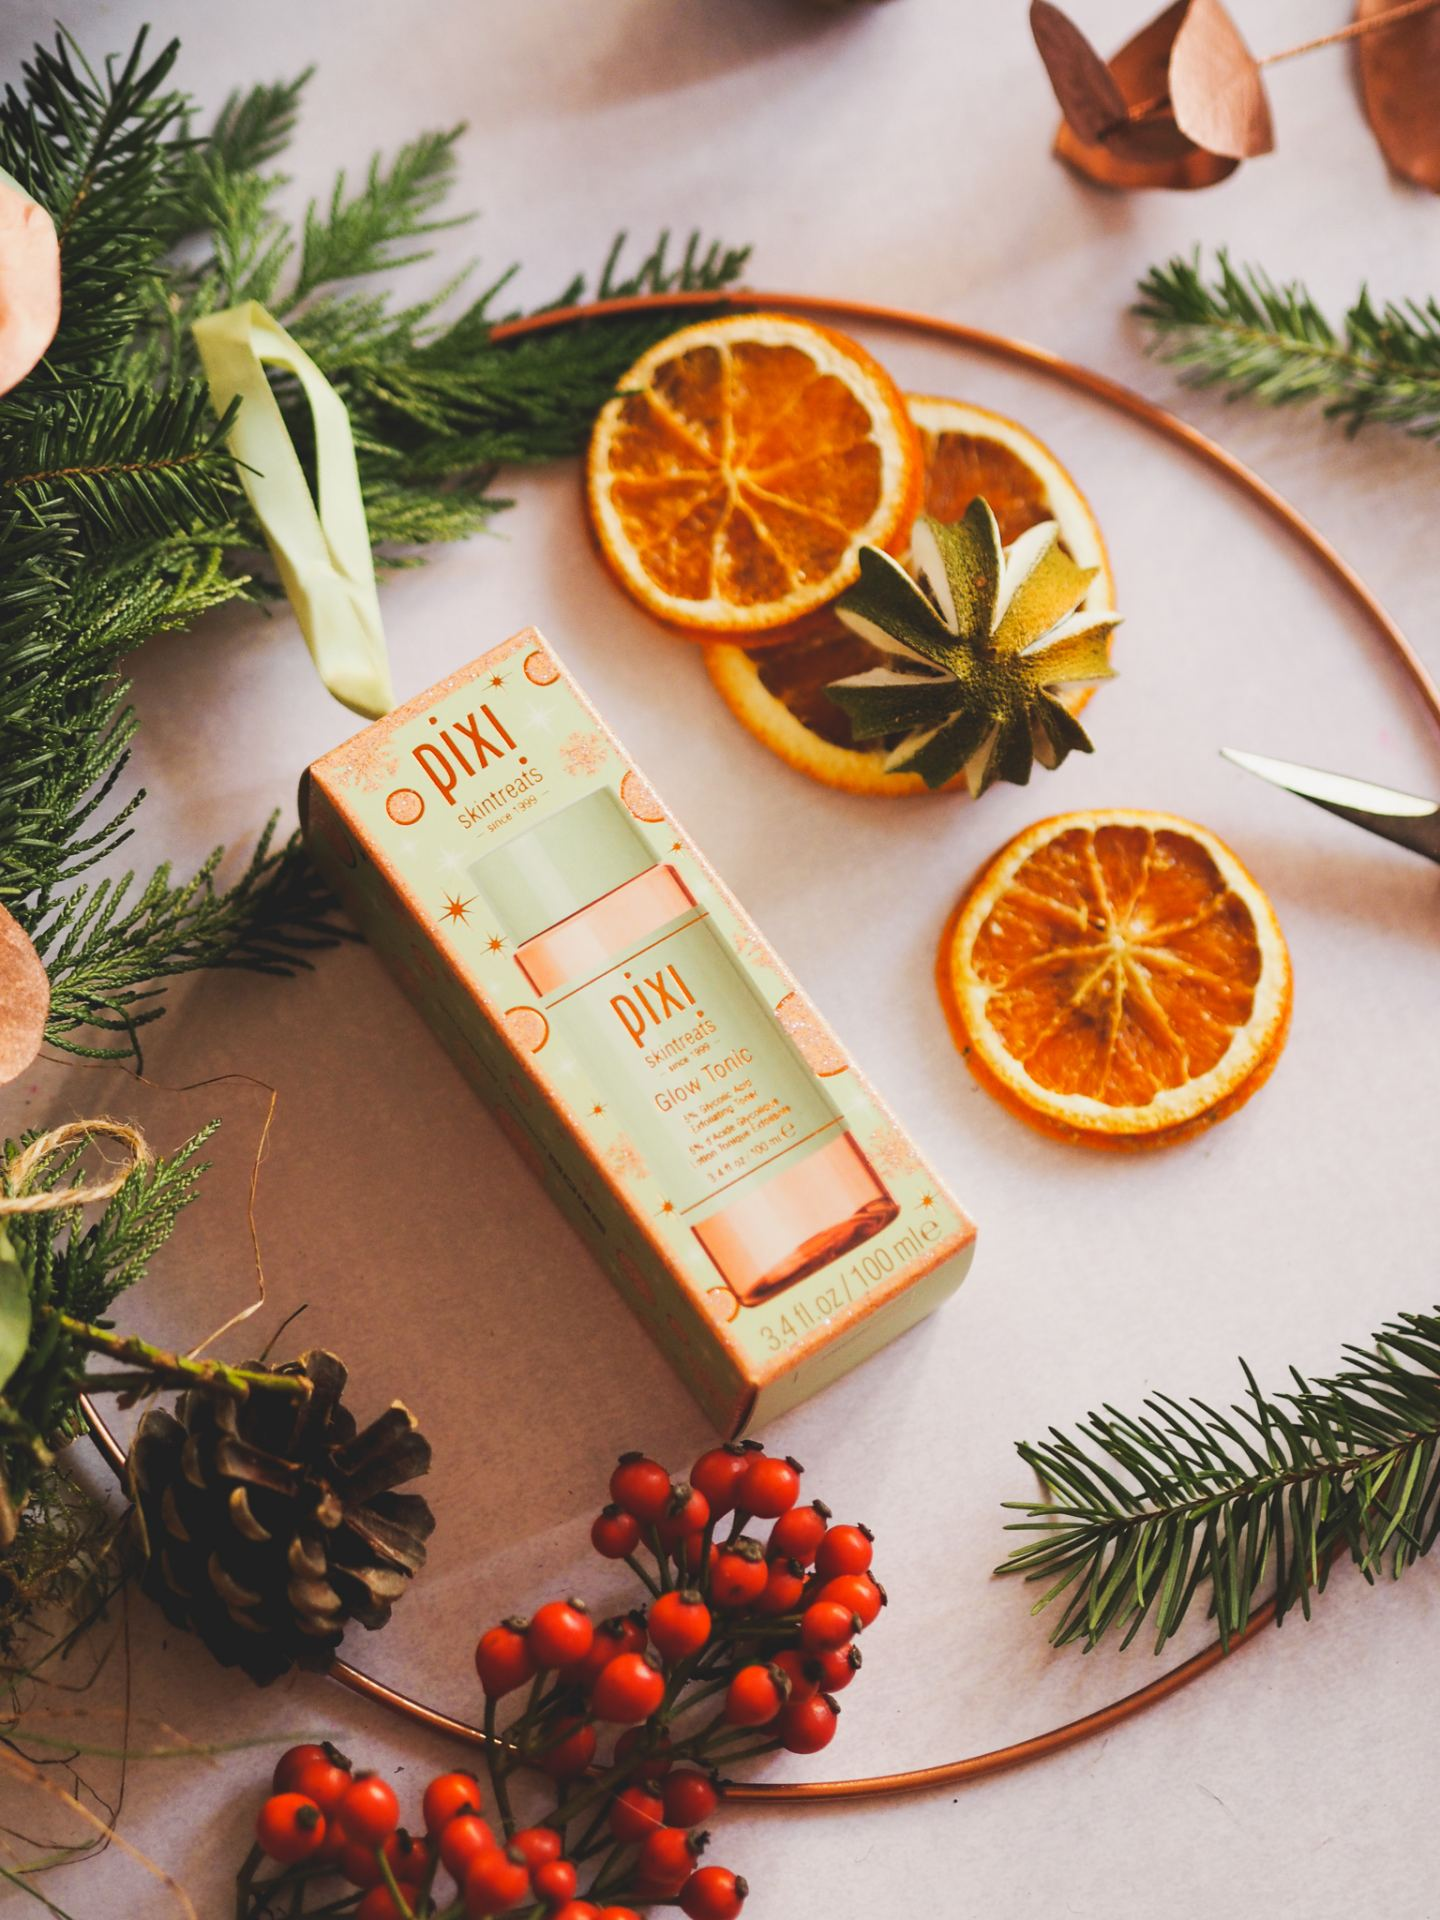 Pixi By Petra Stocking Fillers vitamin c tonic